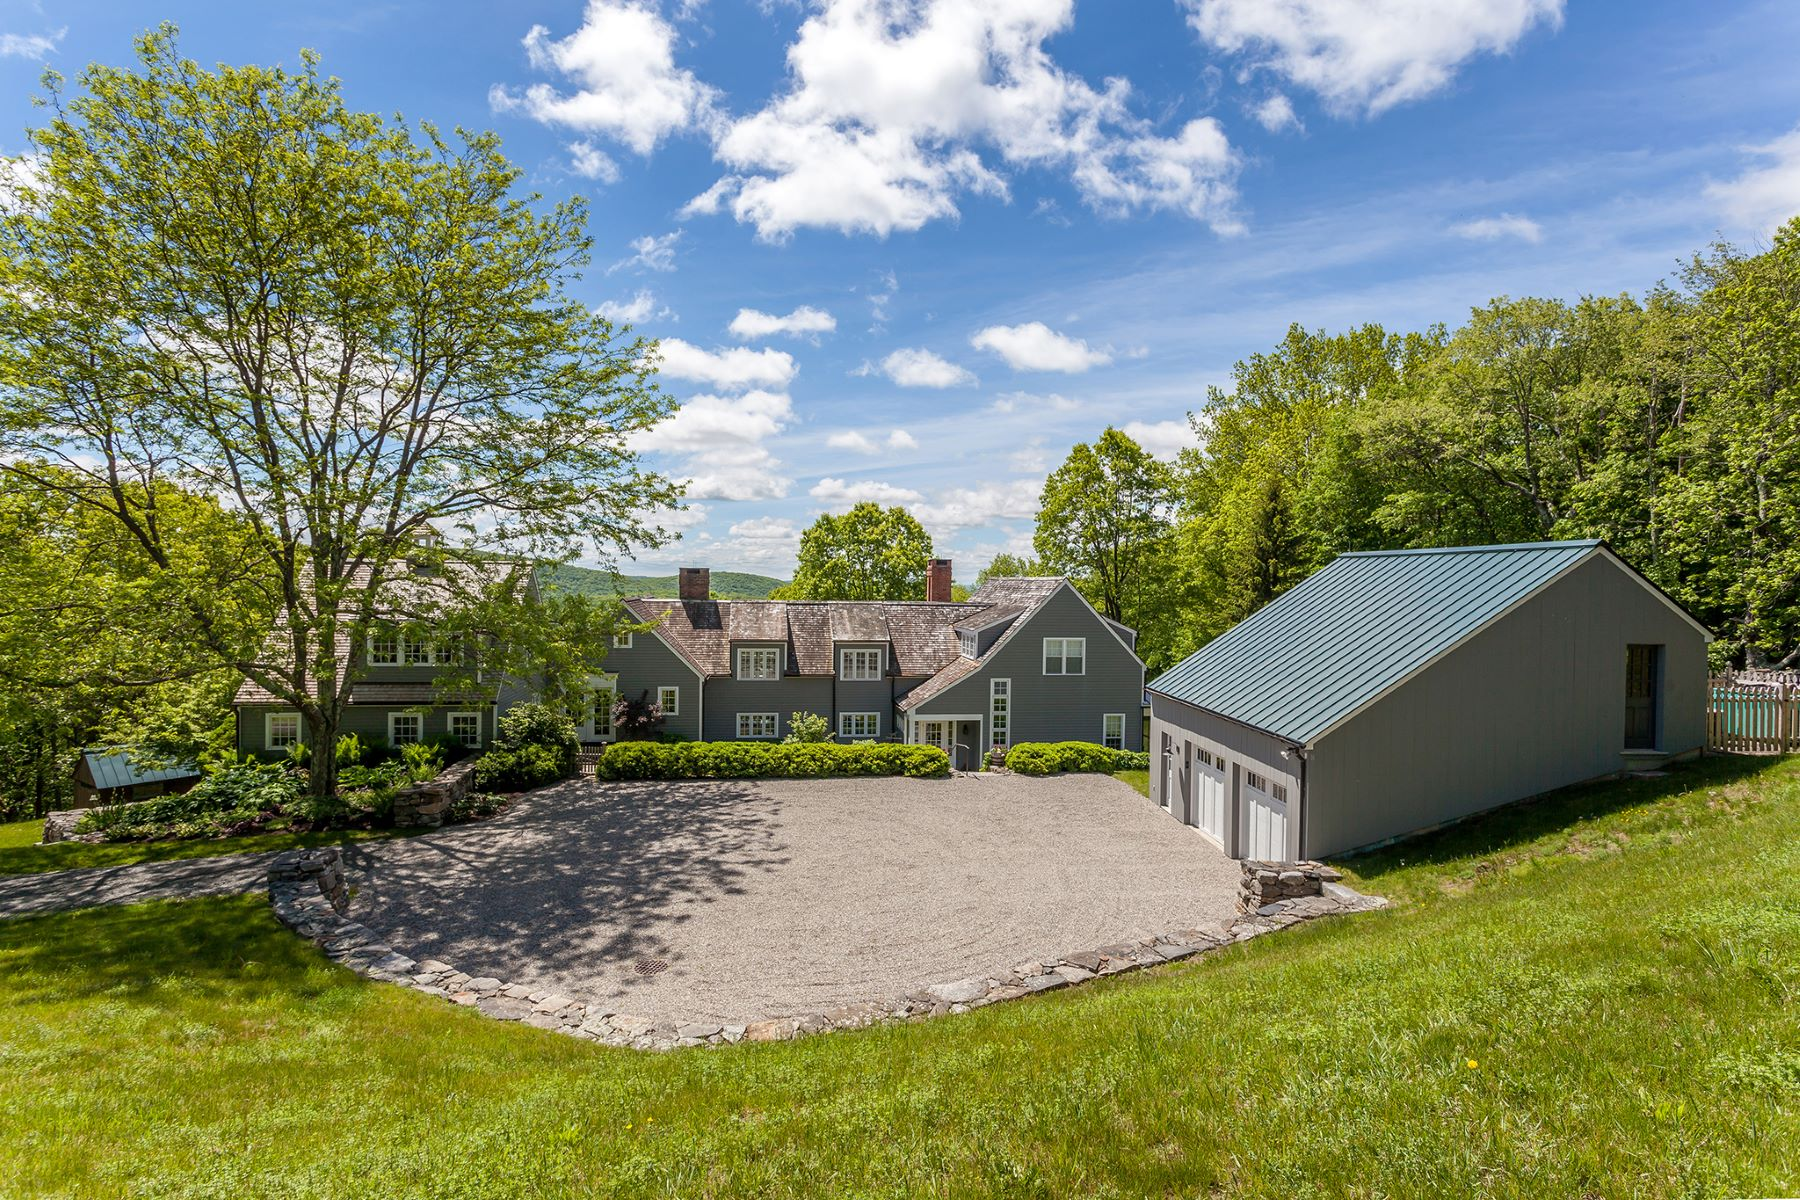 Single Family Home for Sale at Contemporary Elegance 152 Ore Hill Road, Kent, Connecticut 06785 United States